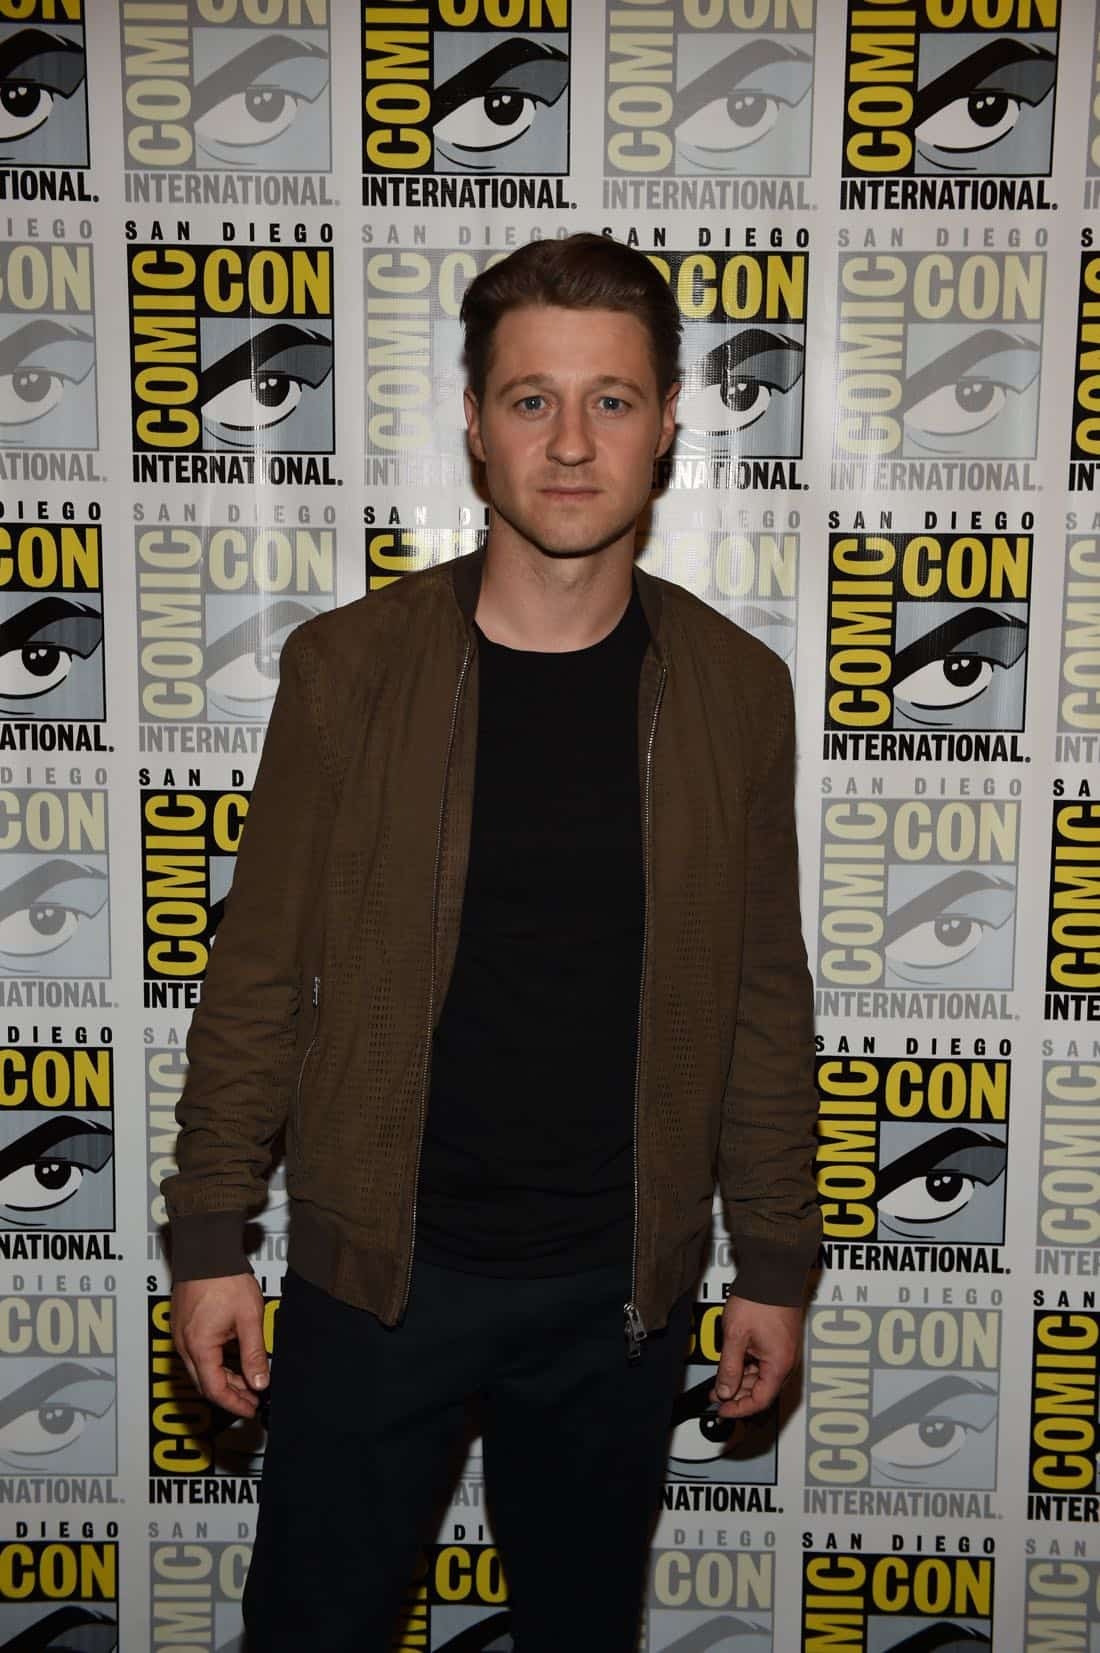 FOX FANFARE AT SAN DIEGO COMIC-CON © 2016: GOTHAM cast member Ben McKenzie during GOTHAM press room on Saturday, July 23 at the FOX FANFARE AT SAN DIEGO COMIC-CON © 2016. CR: Scott Kirkland/FOX © 2016 FOX BROADCASTING